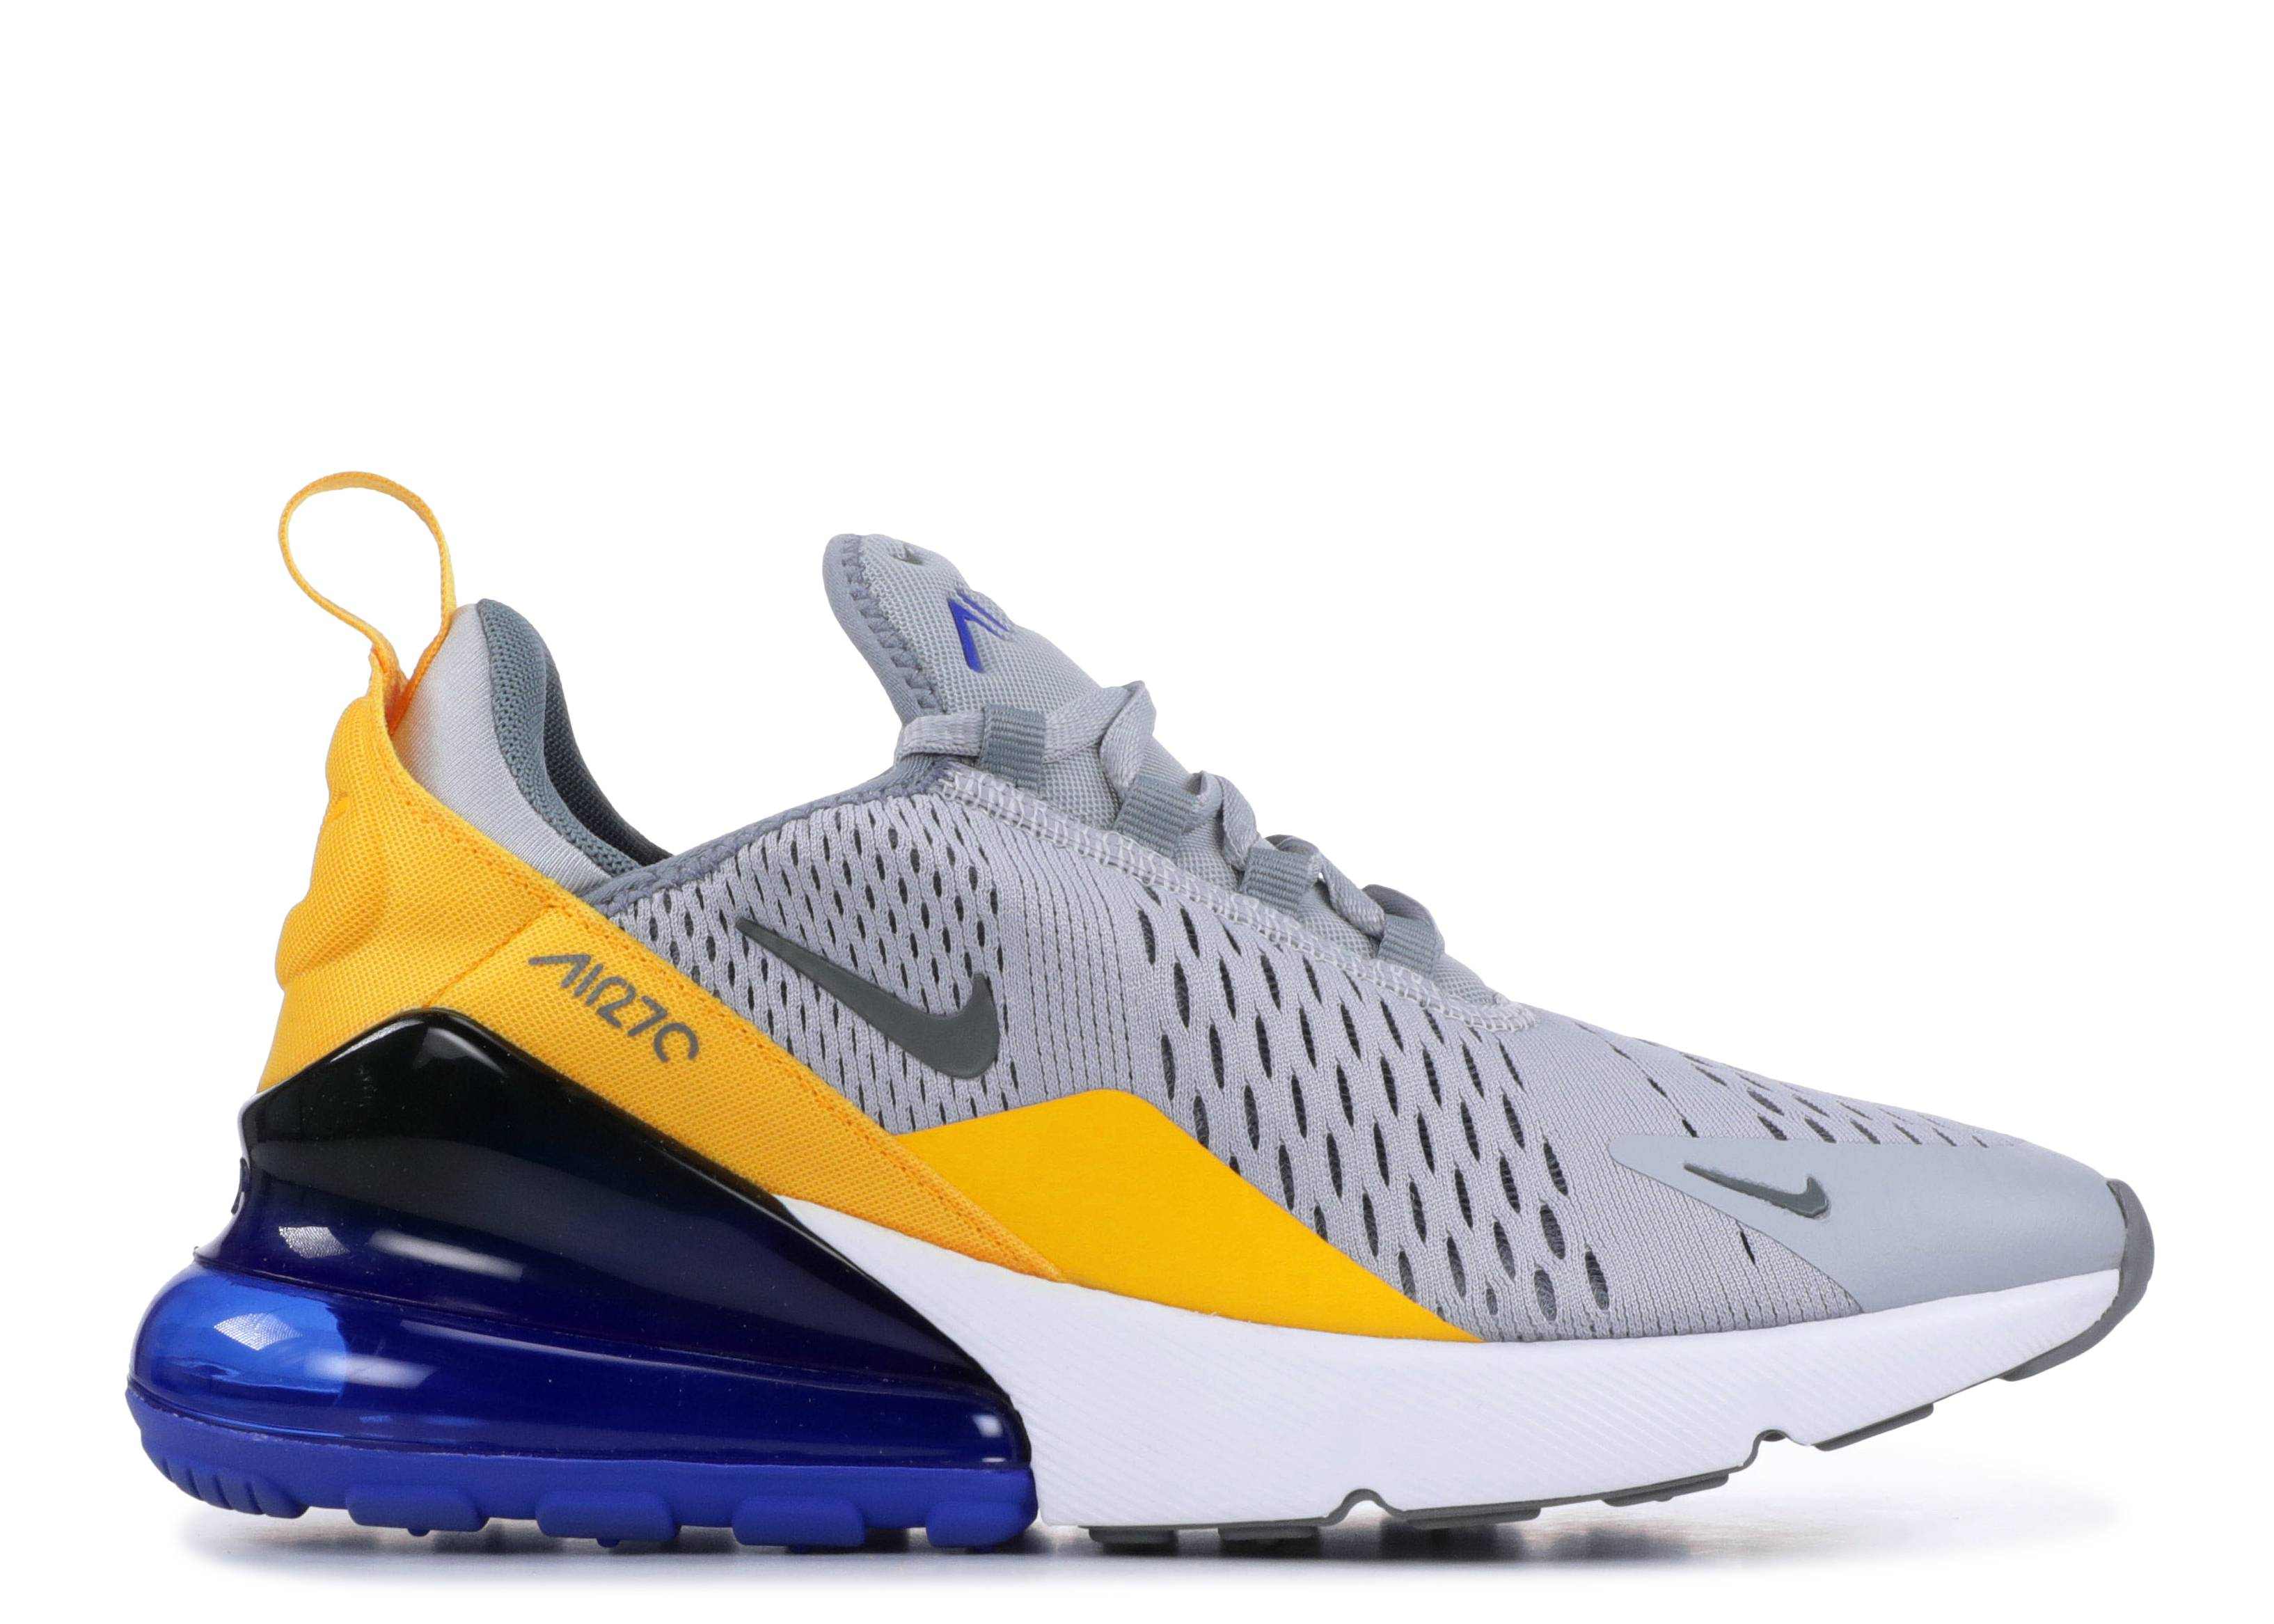 on sale d6762 ad517 Air Max 270 GS